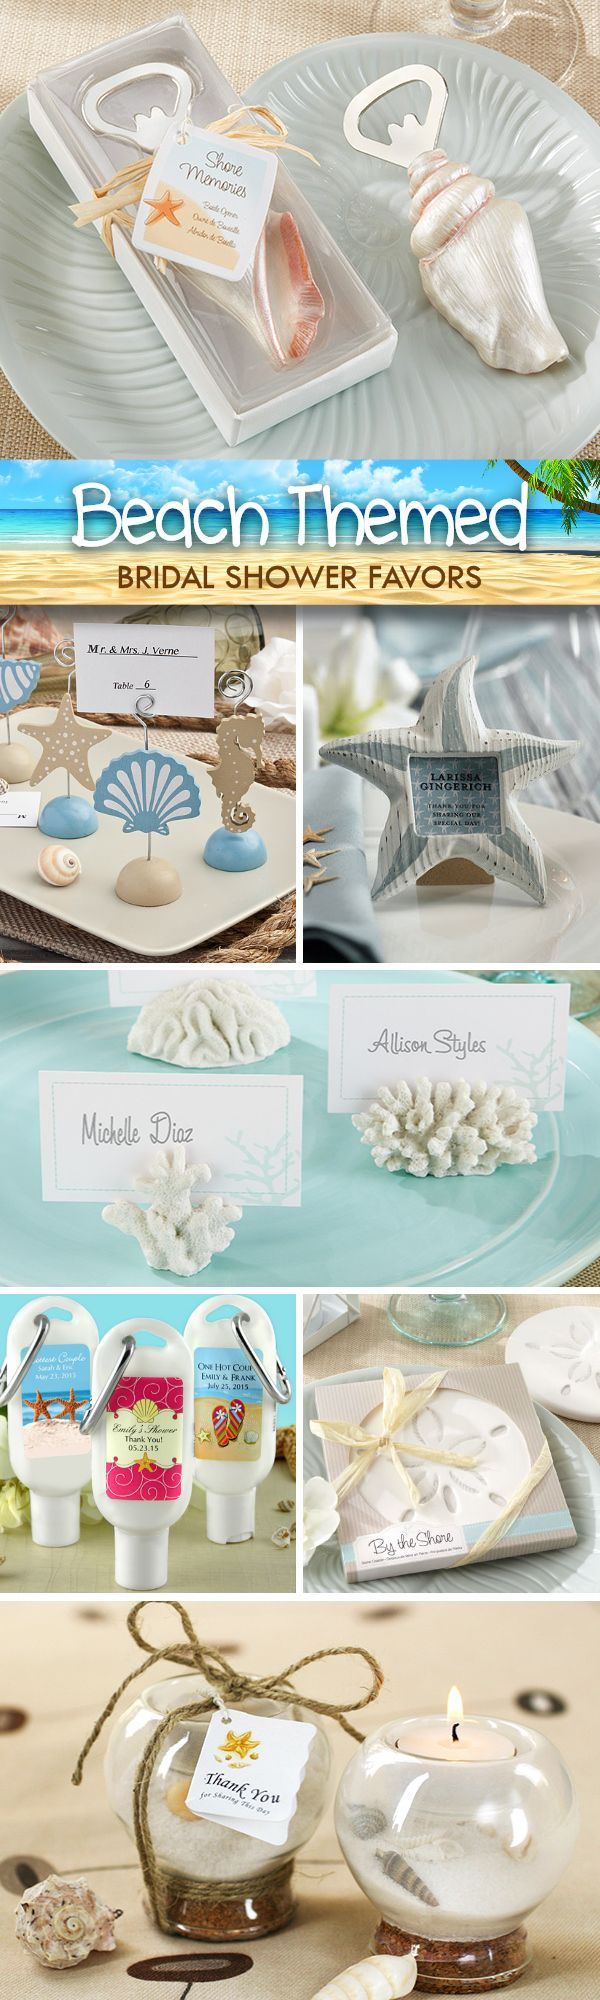 beach wedding shower favor ideas%0A     Beach Themed Wedding Favors that your guests will love    Future Wedding      Pinterest   Beach themed wedding favors  Beach themed weddings and Themed